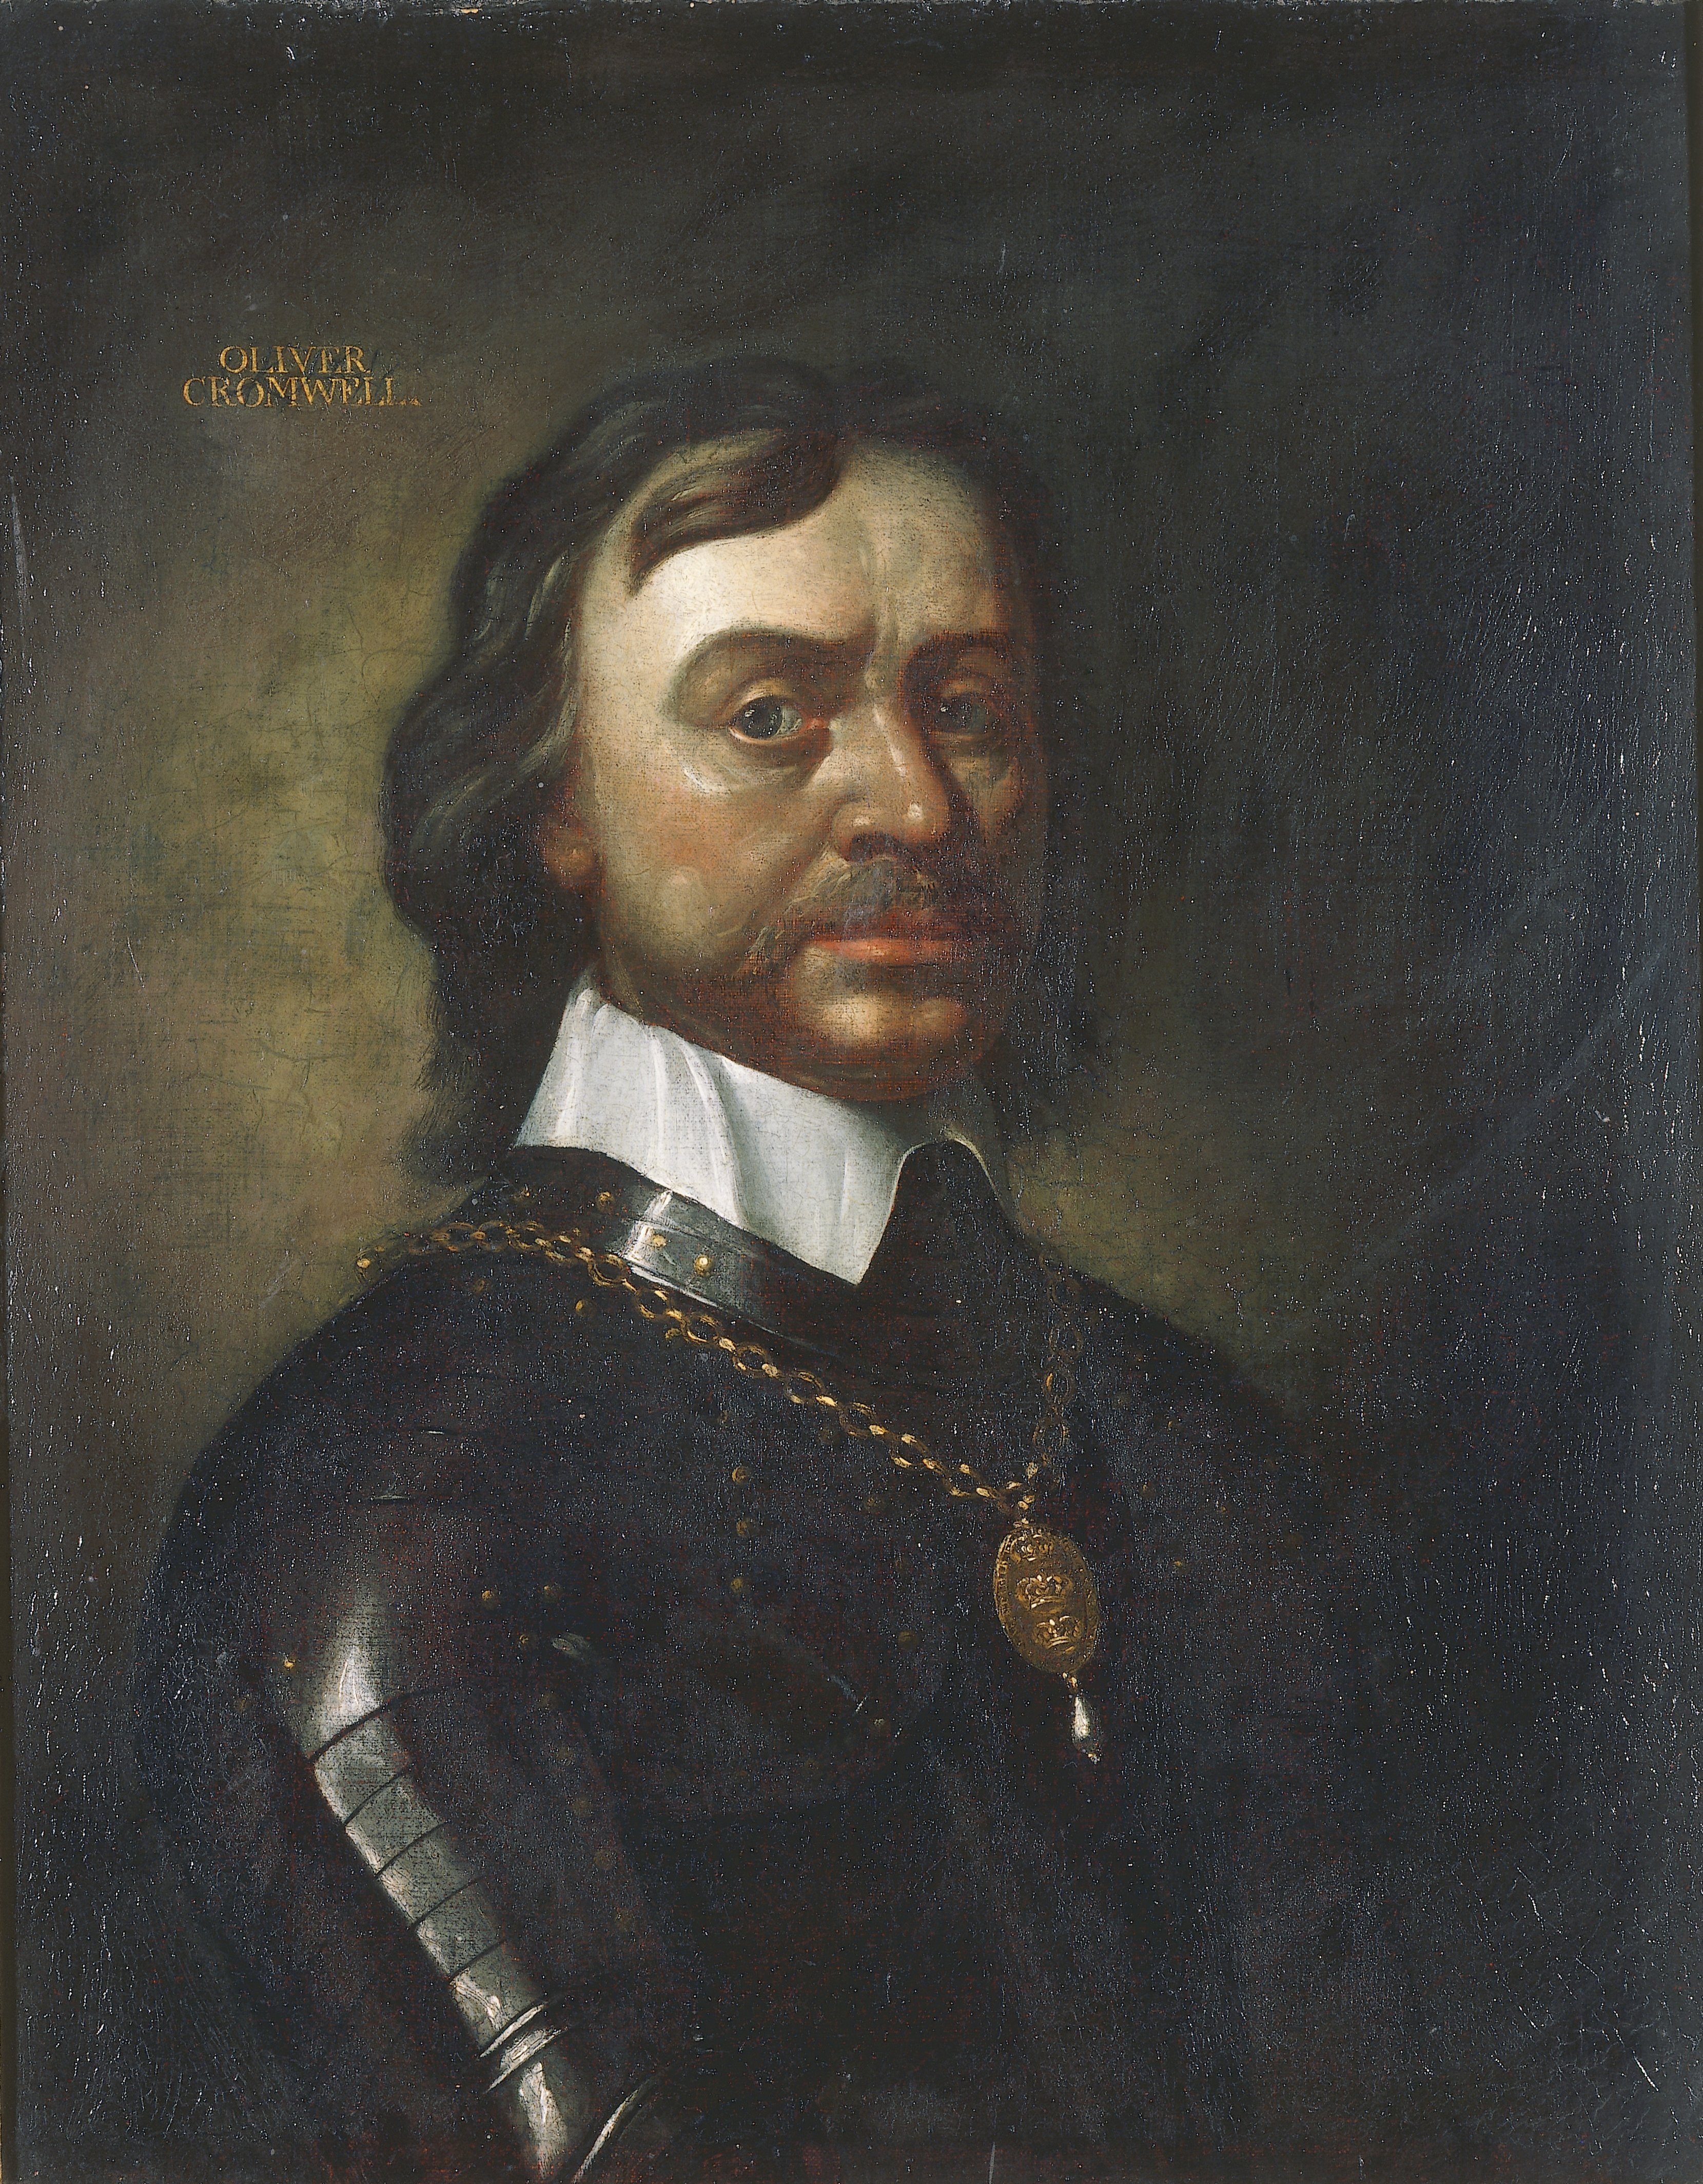 Portrait of Oliver Cromwell, English School, late 1600s, Oil on Canvas. thumbnail